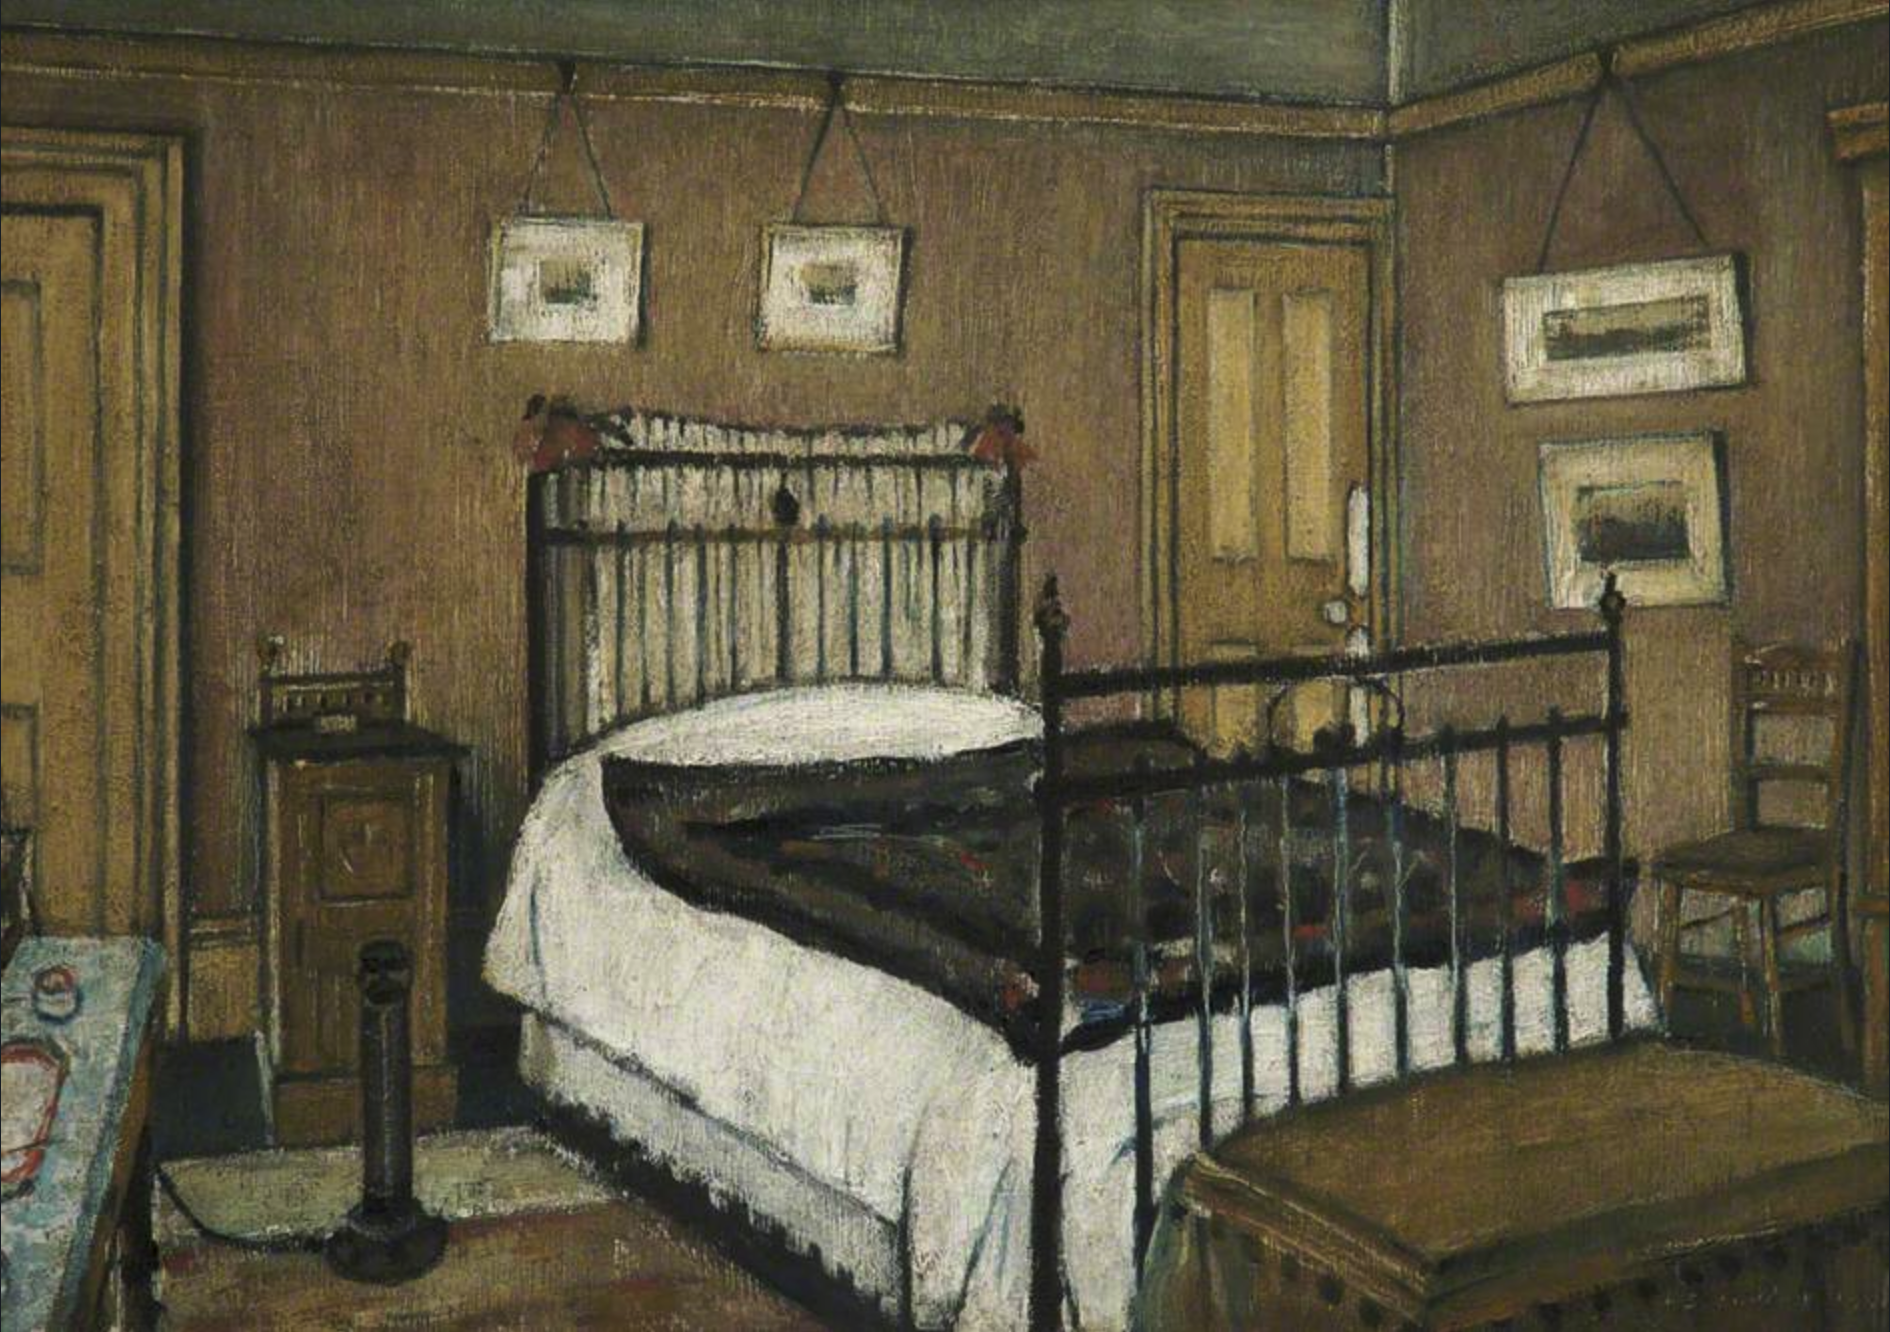 The Bedroom, Pendlebury (1940) by Laurence Stephen Lowry (1887 - 1976), English artist.